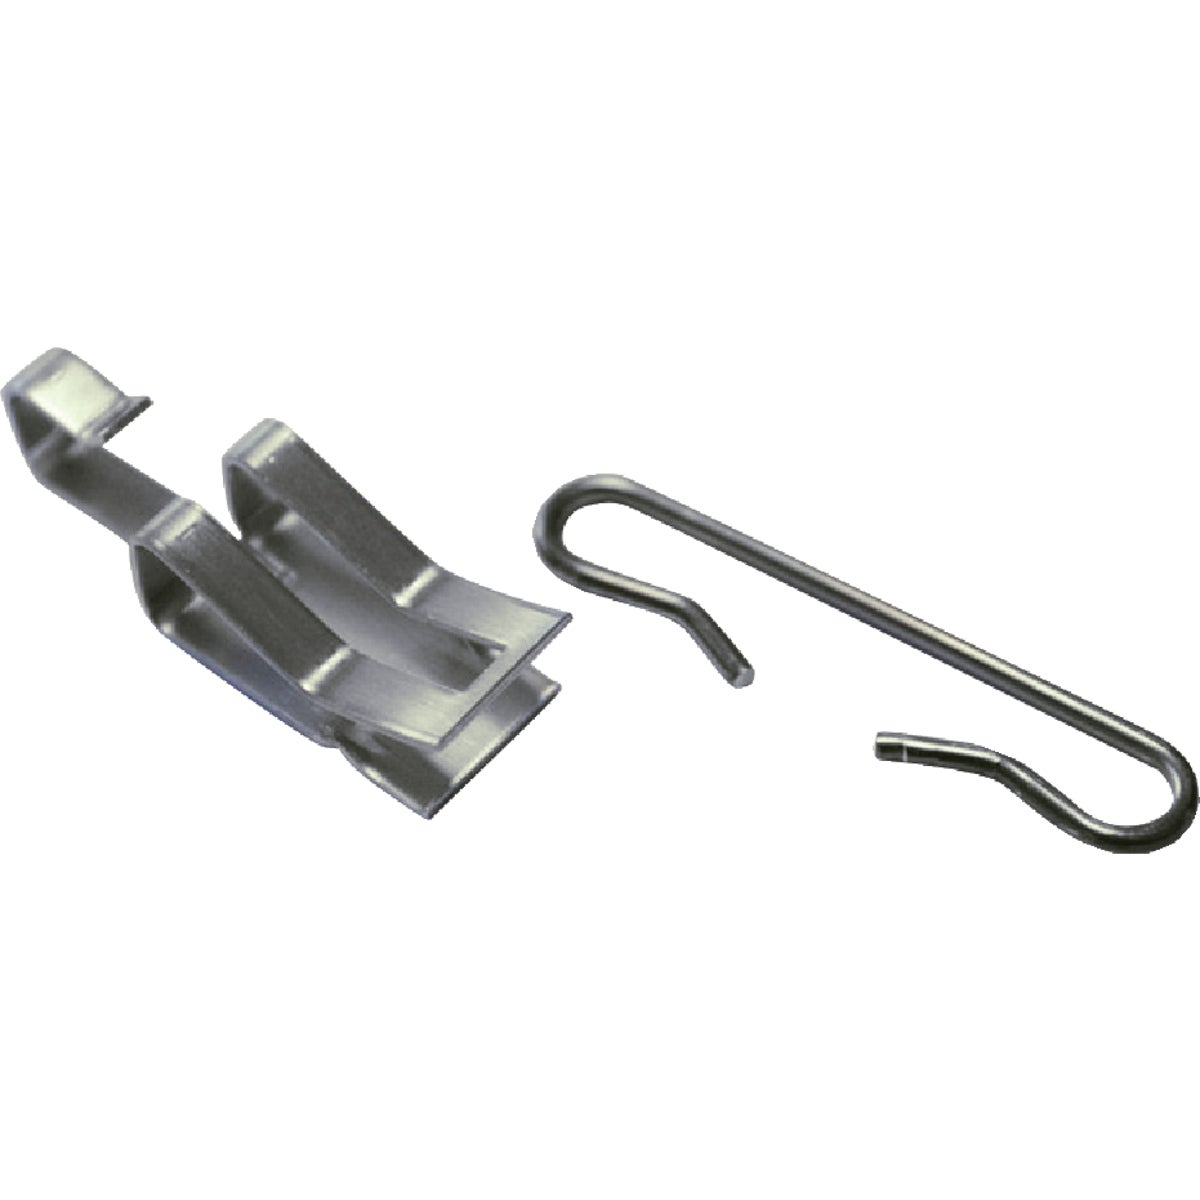 ROOF CABLE CLIPS - CSK-12 by Easy Heat Inc